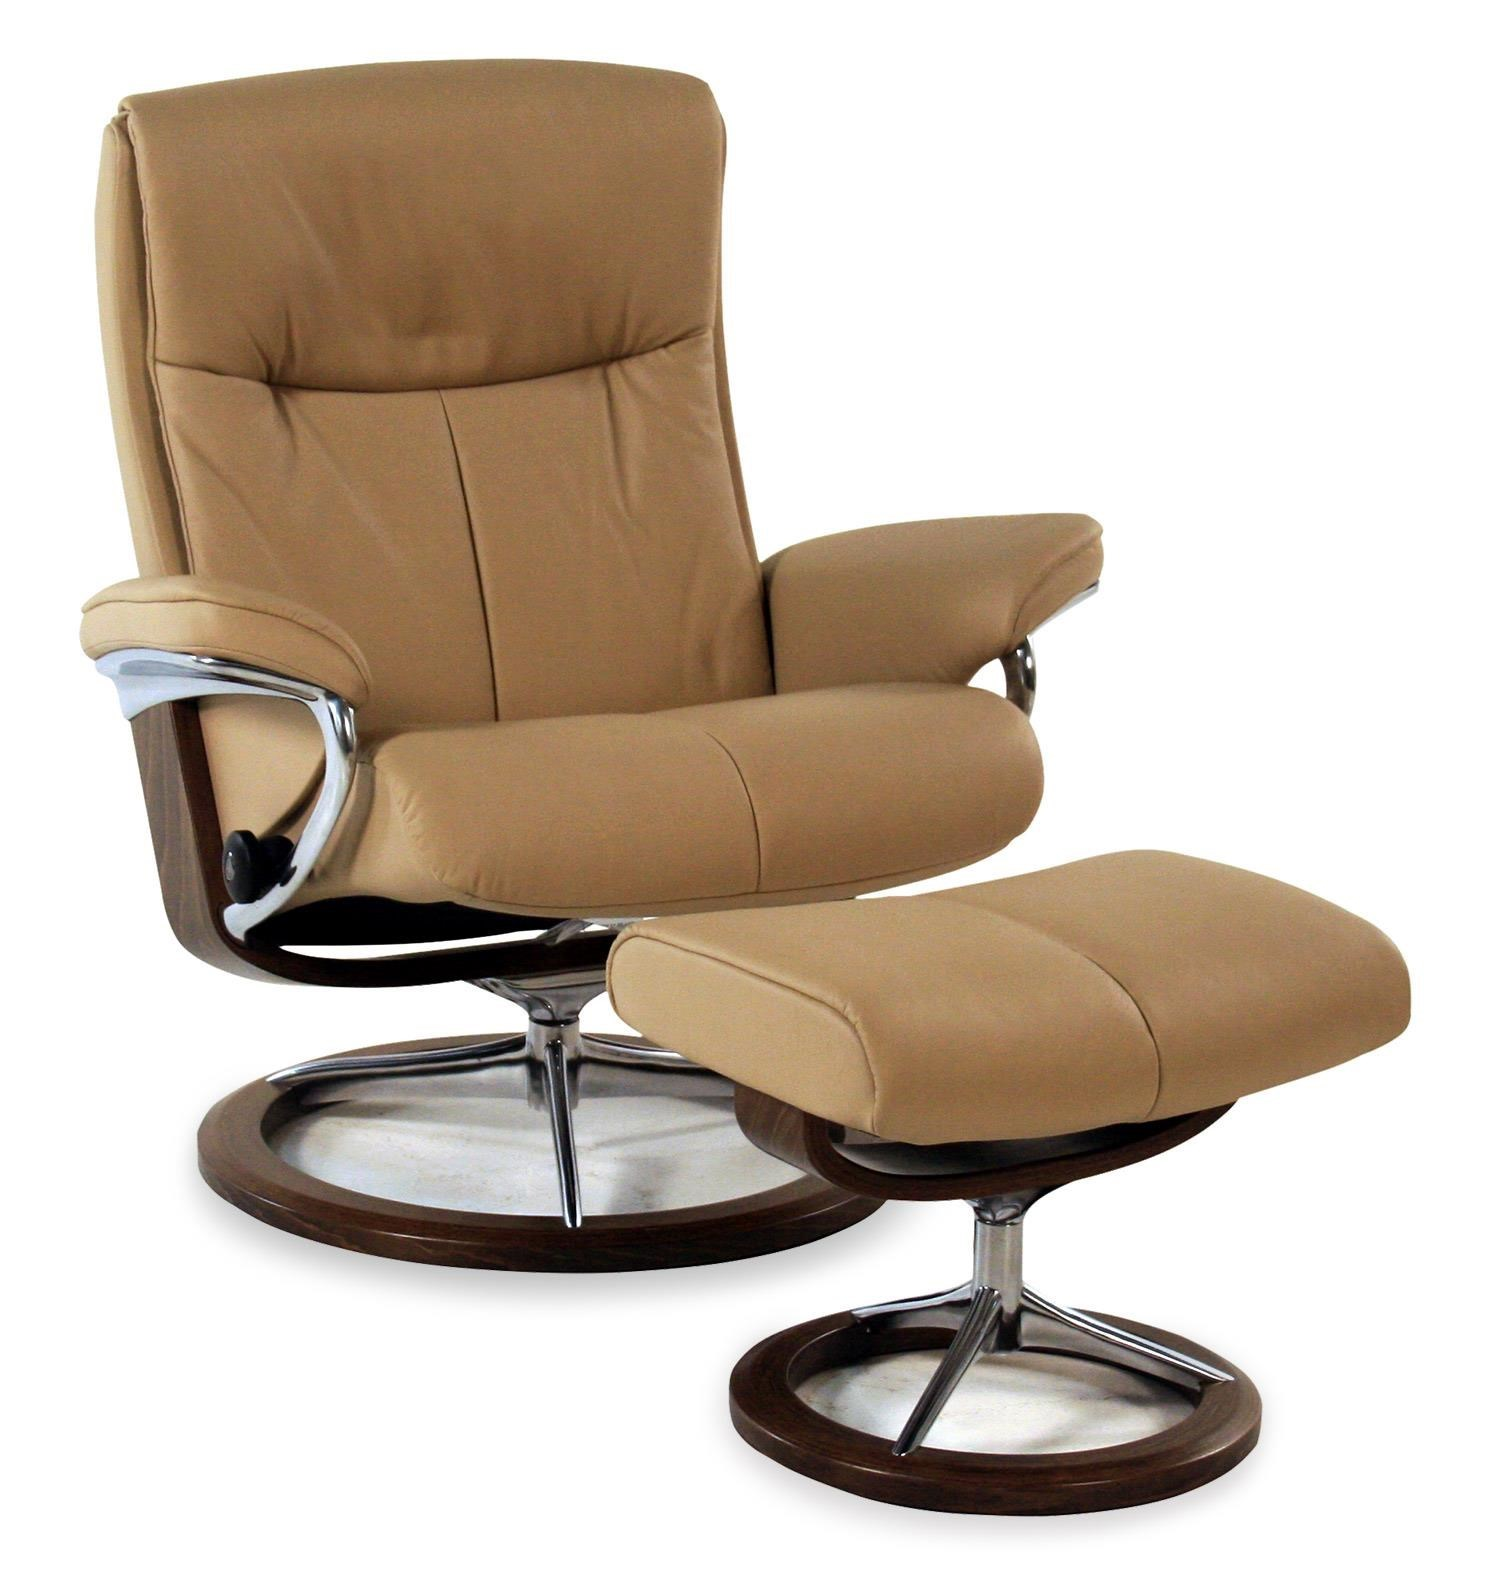 Stressless by Ekornes Stressless Peace Large Signature Reclining Chair/ Ottoman Paloma Beige  sc 1 st  Rotmans & Stressless by Ekornes Stressless Peace Large Signature Reclining ... islam-shia.org